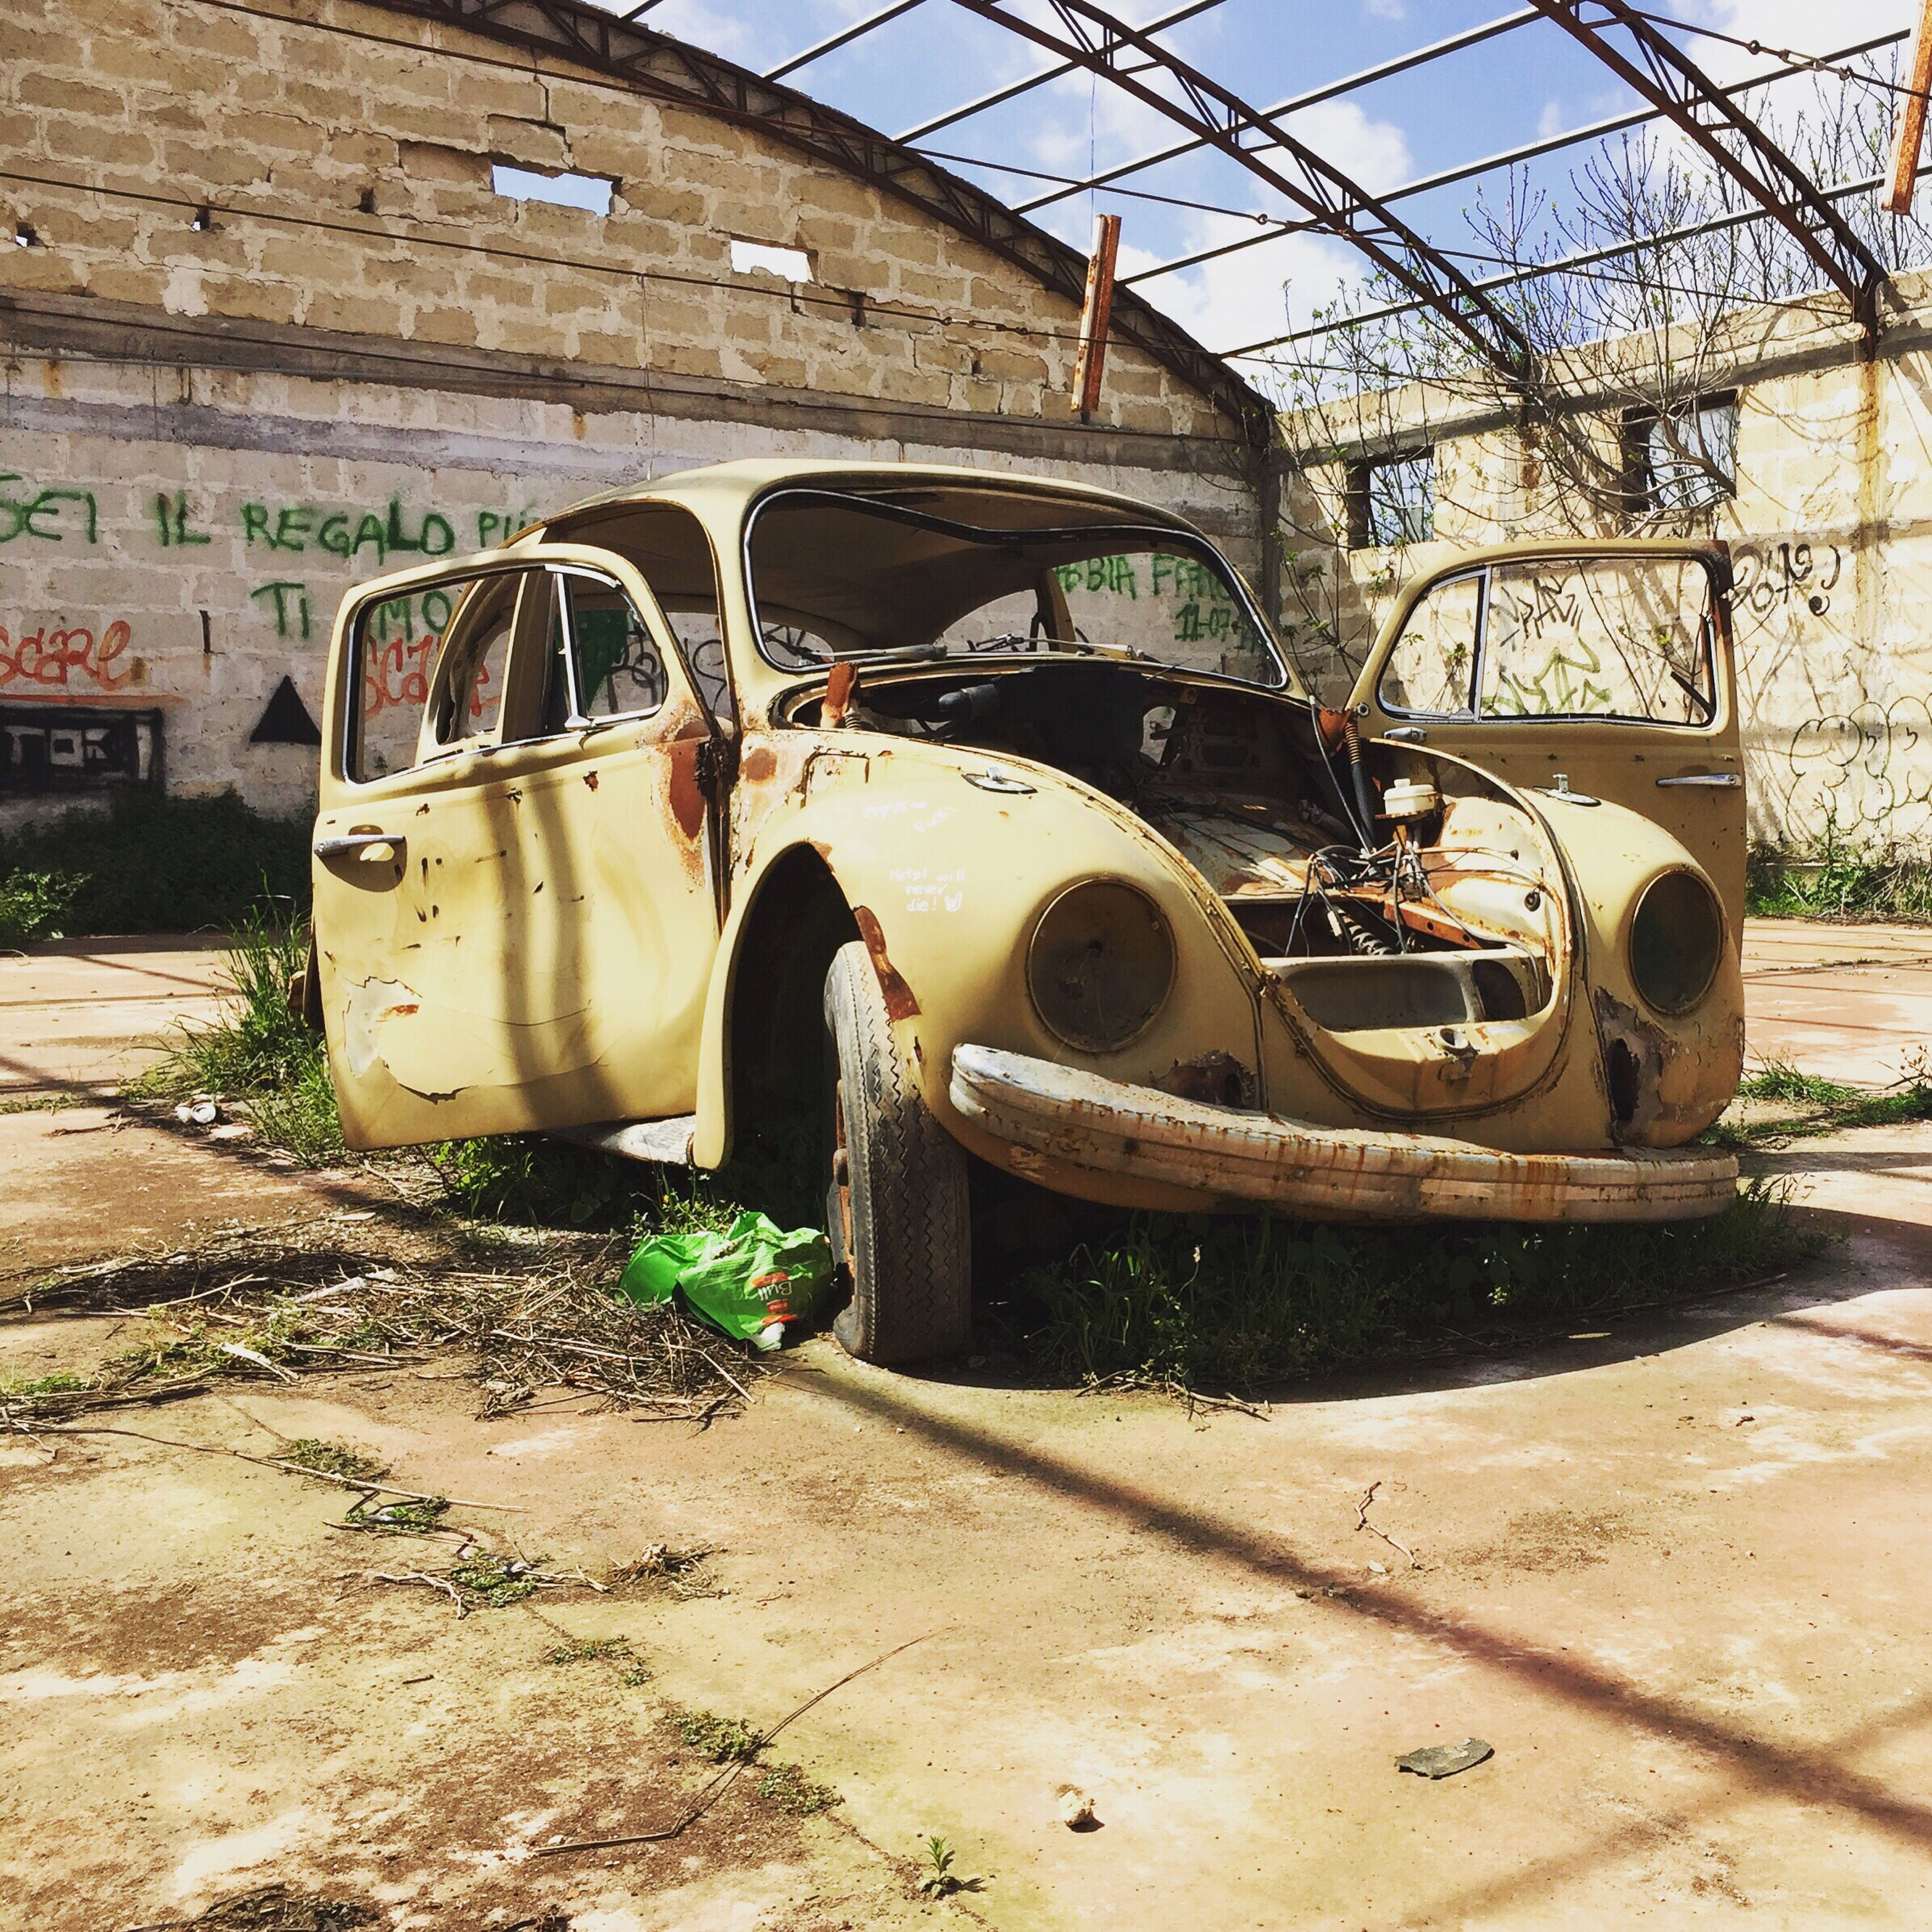 abandoned, transportation, built structure, architecture, obsolete, land vehicle, mode of transport, damaged, old, deterioration, building exterior, run-down, rusty, day, weathered, stationary, sunlight, car, outdoors, bad condition